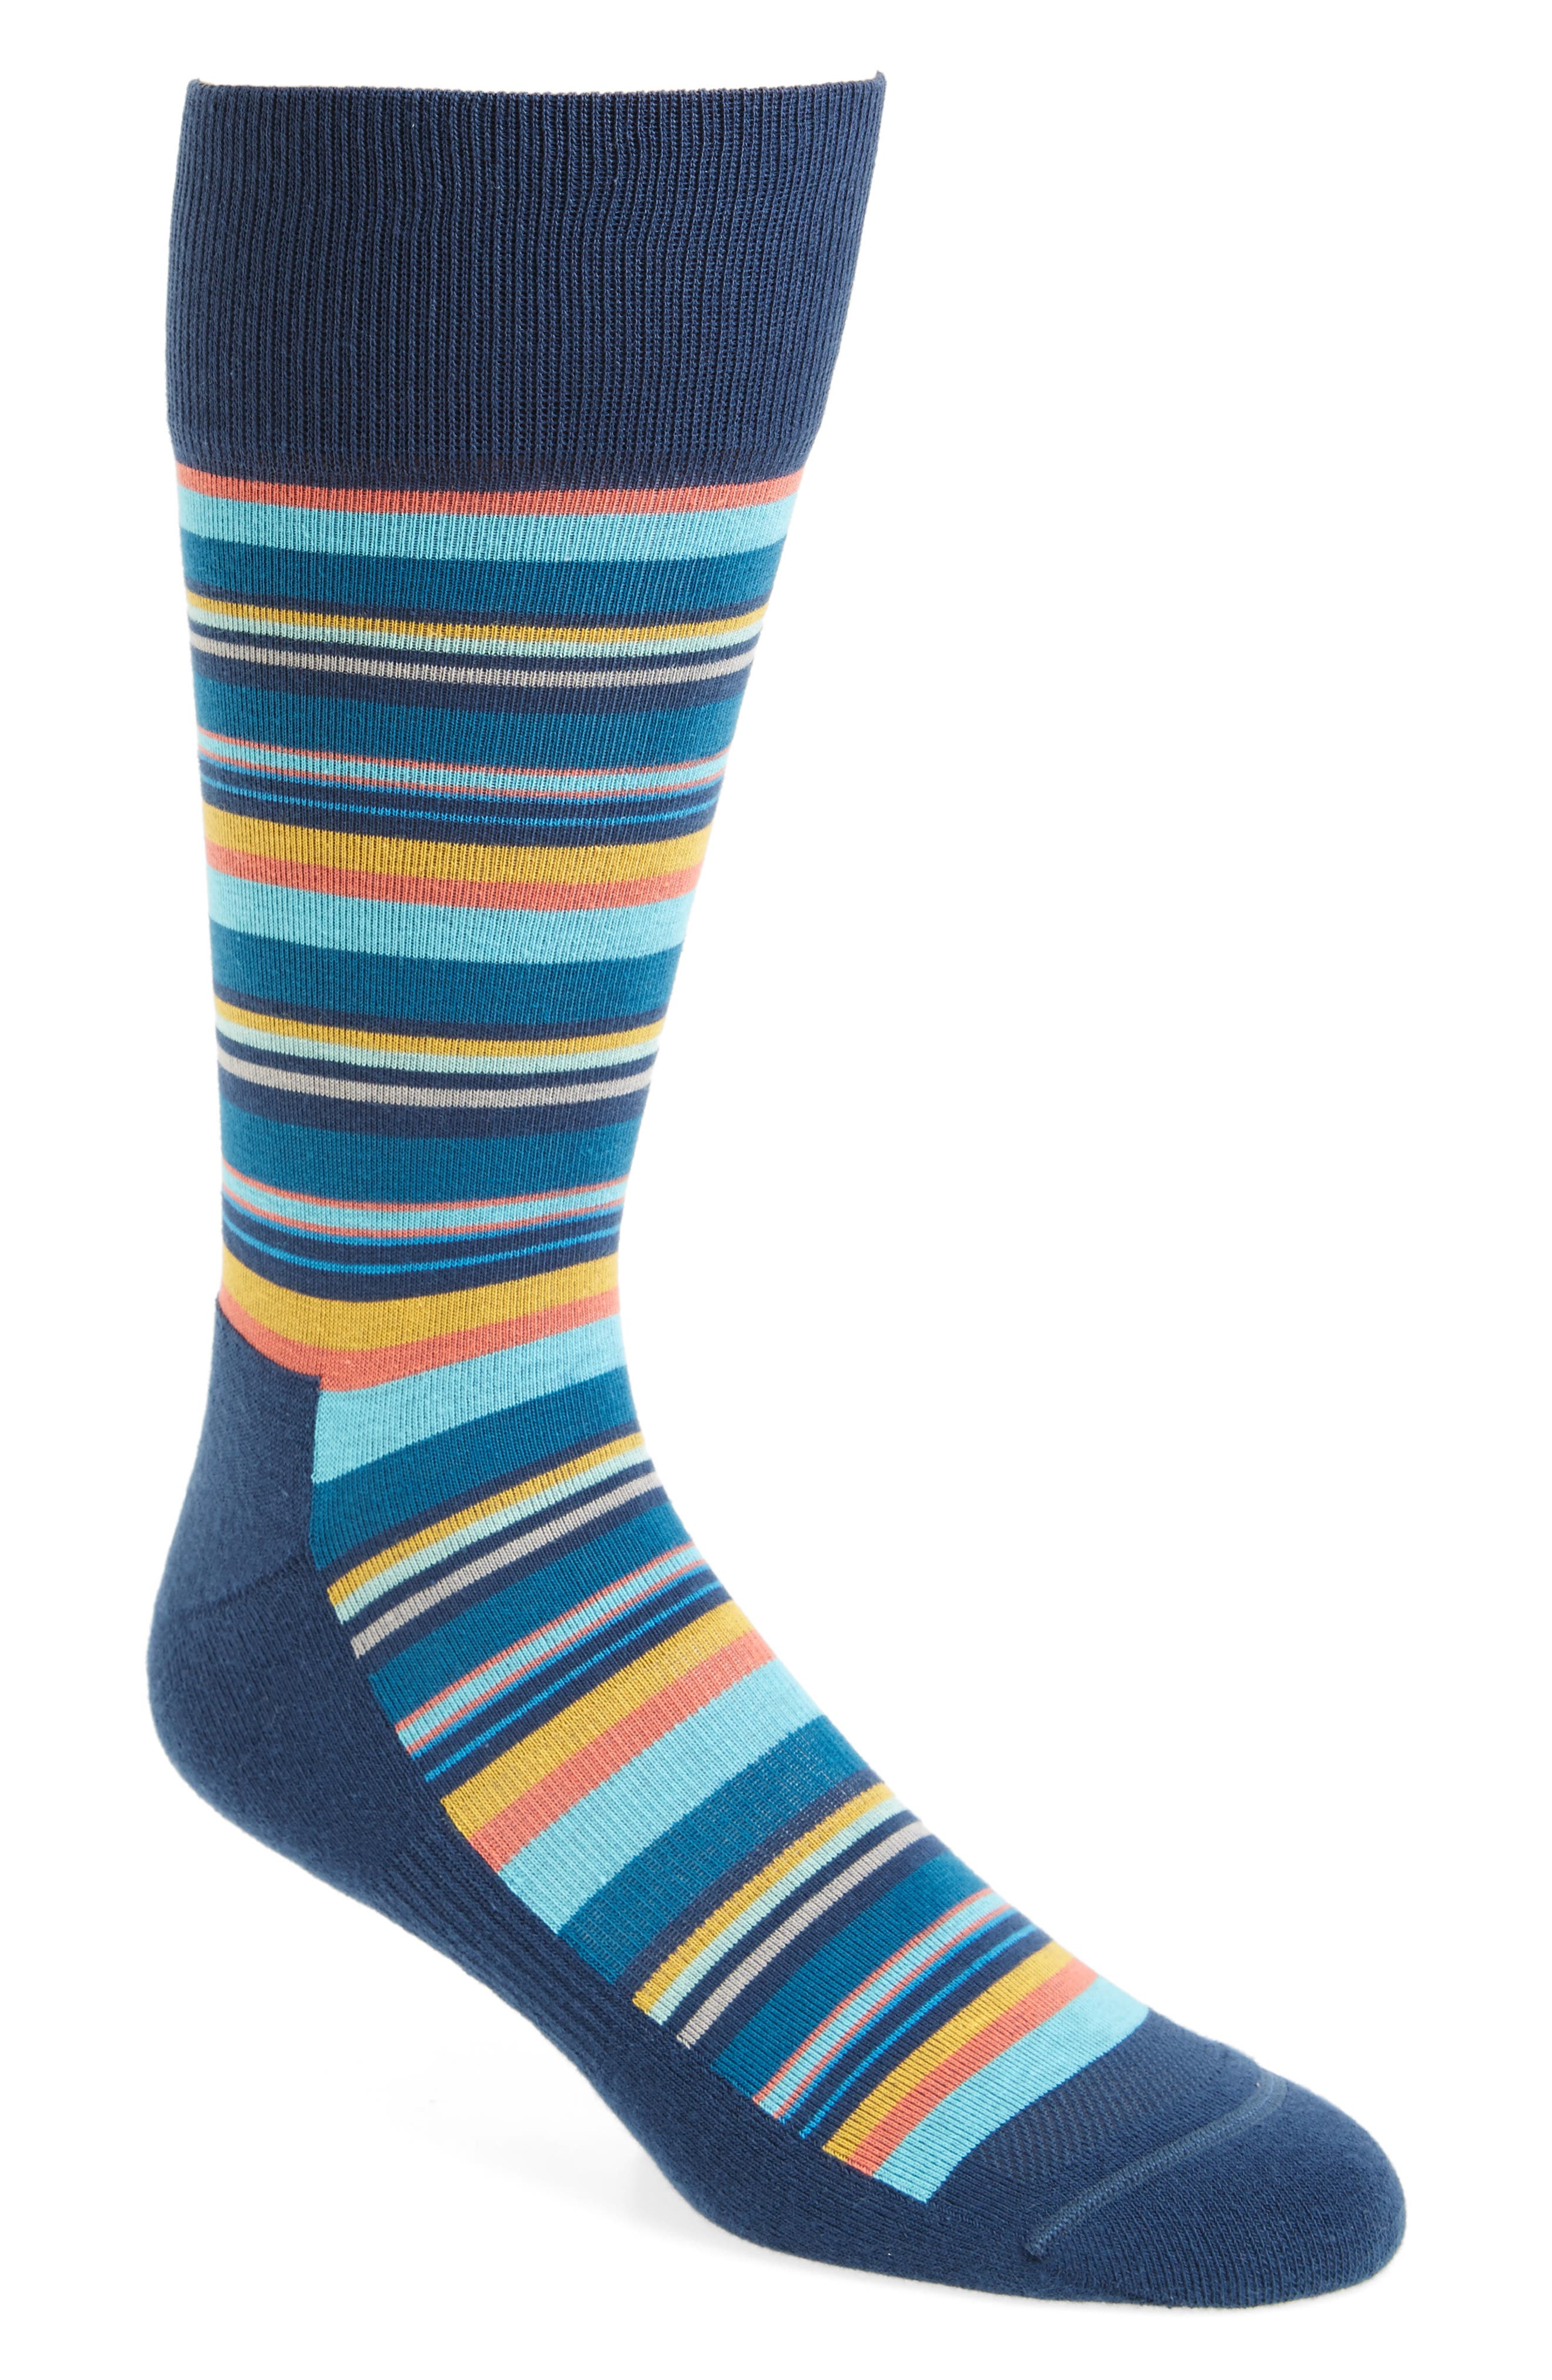 Variegated Stripe Socks,                         Main,                         color, NAVY/ ORANGE